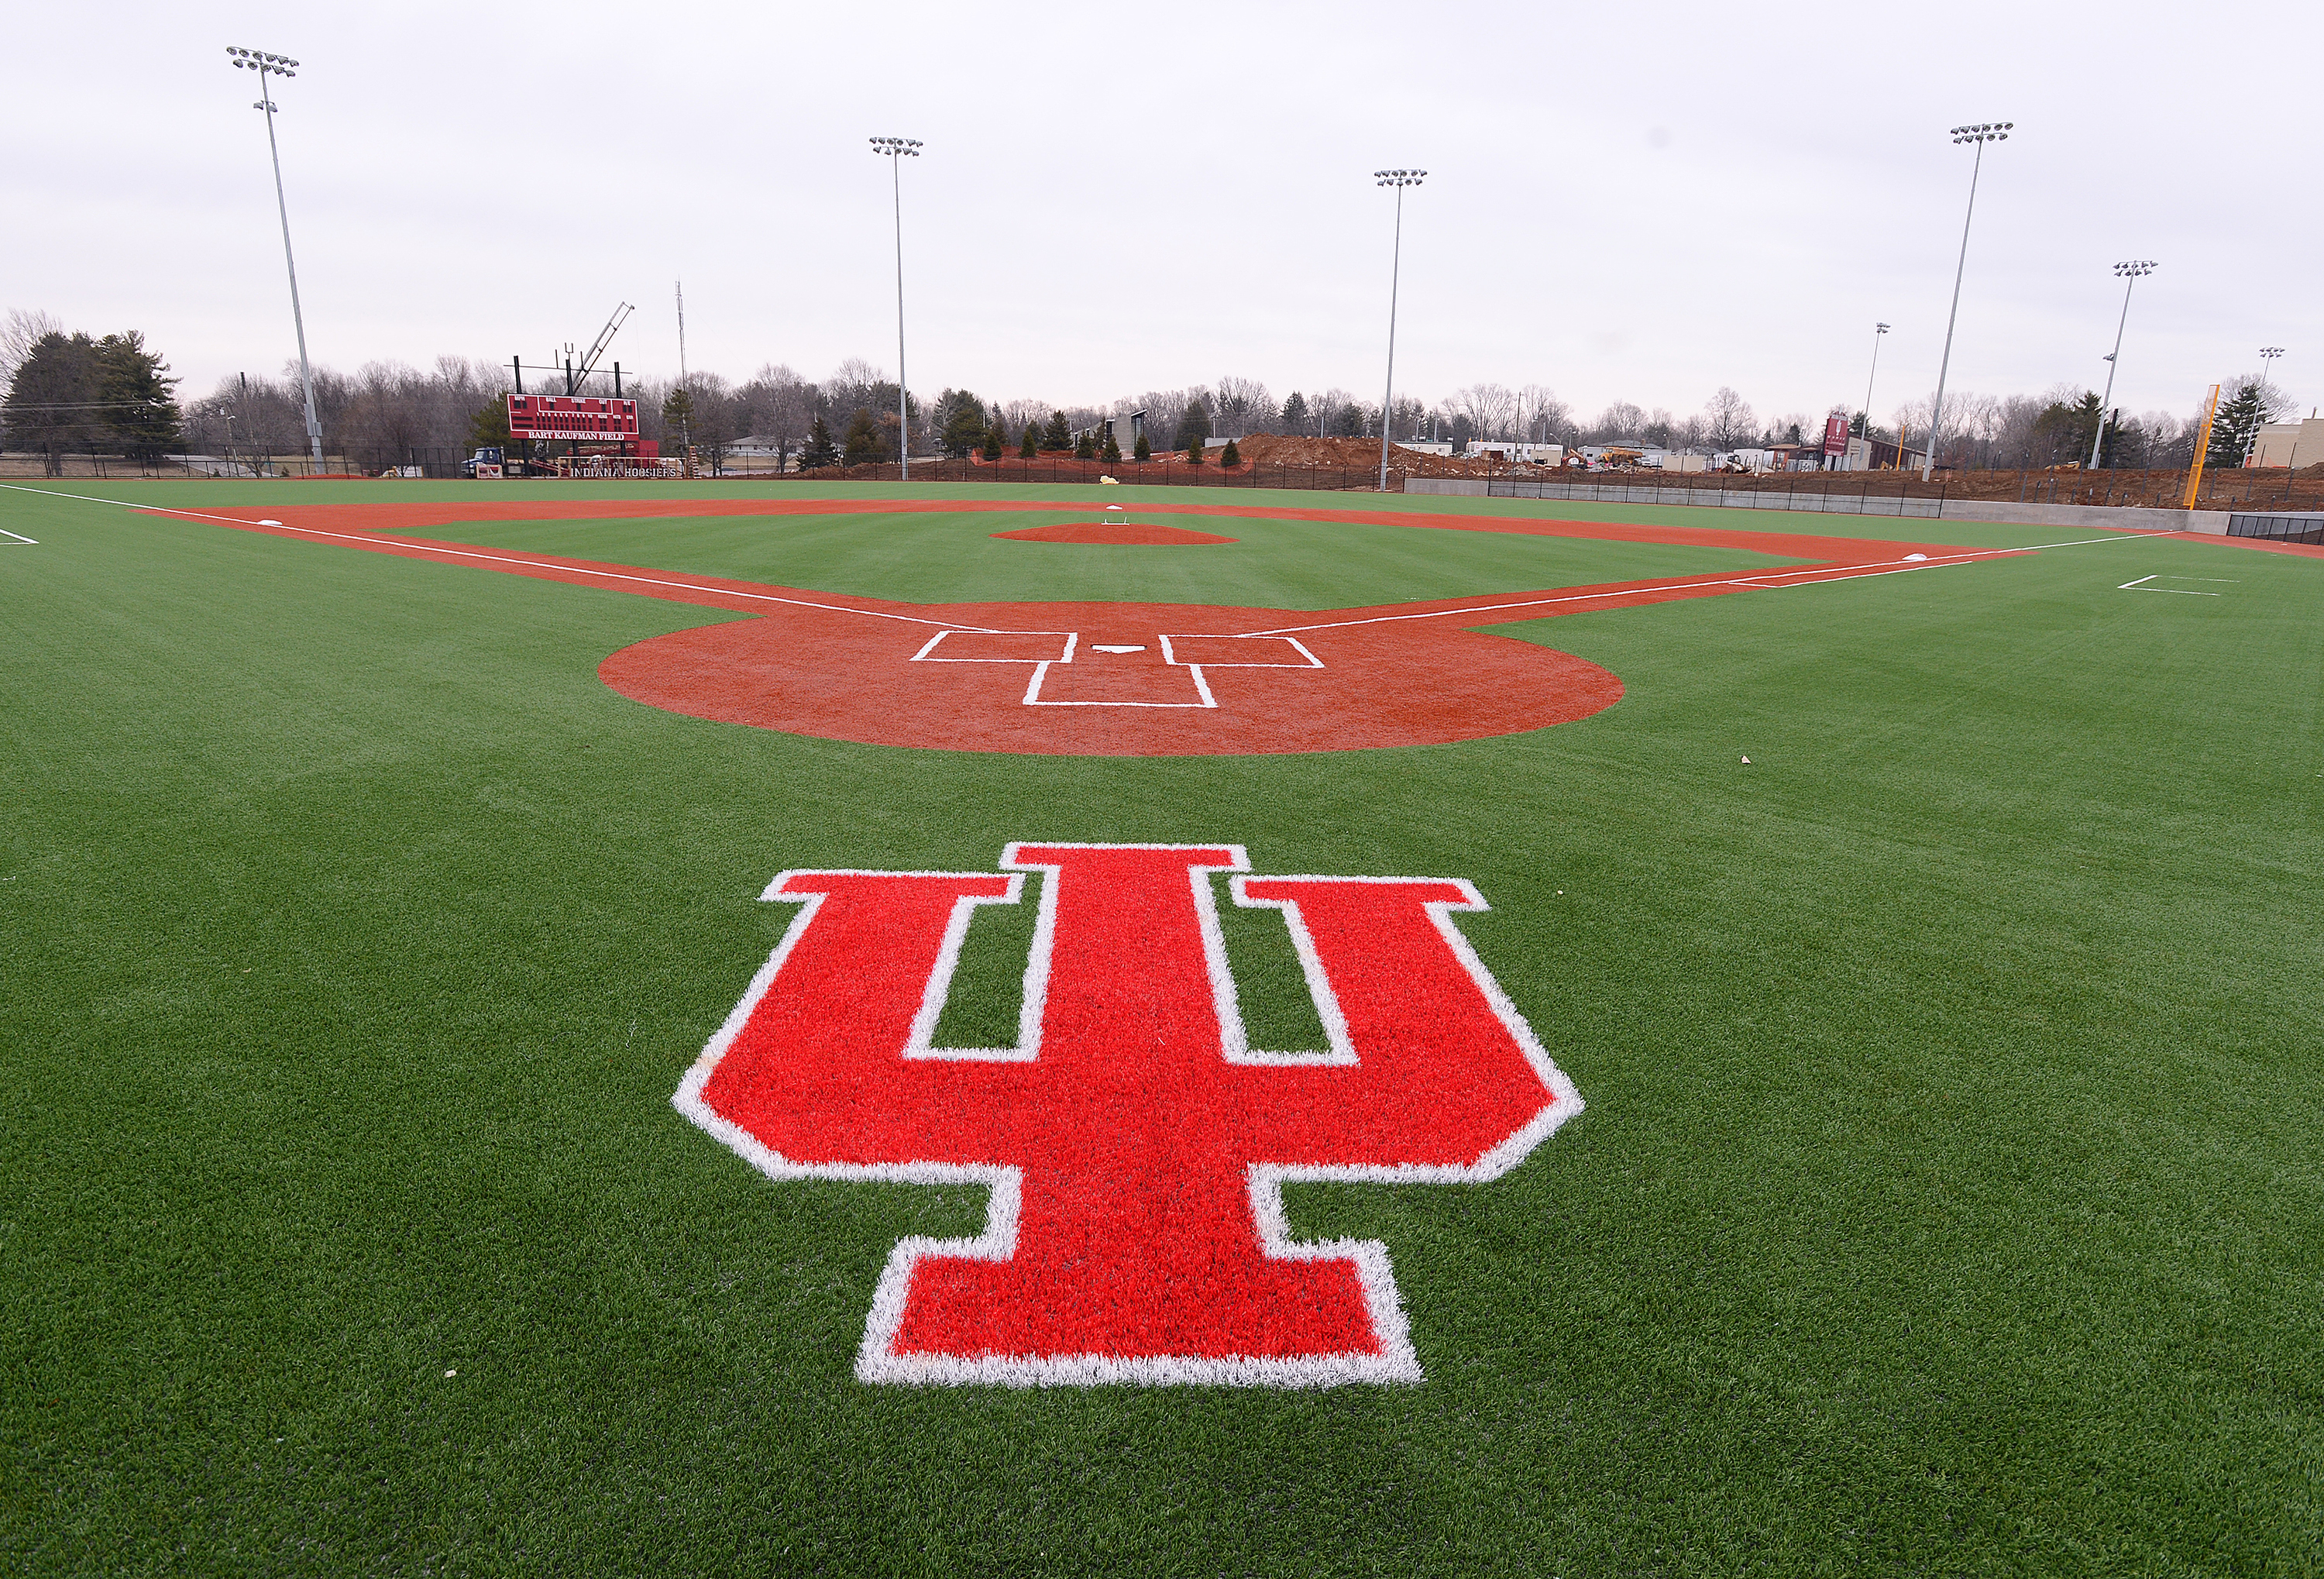 IU Baseball ground